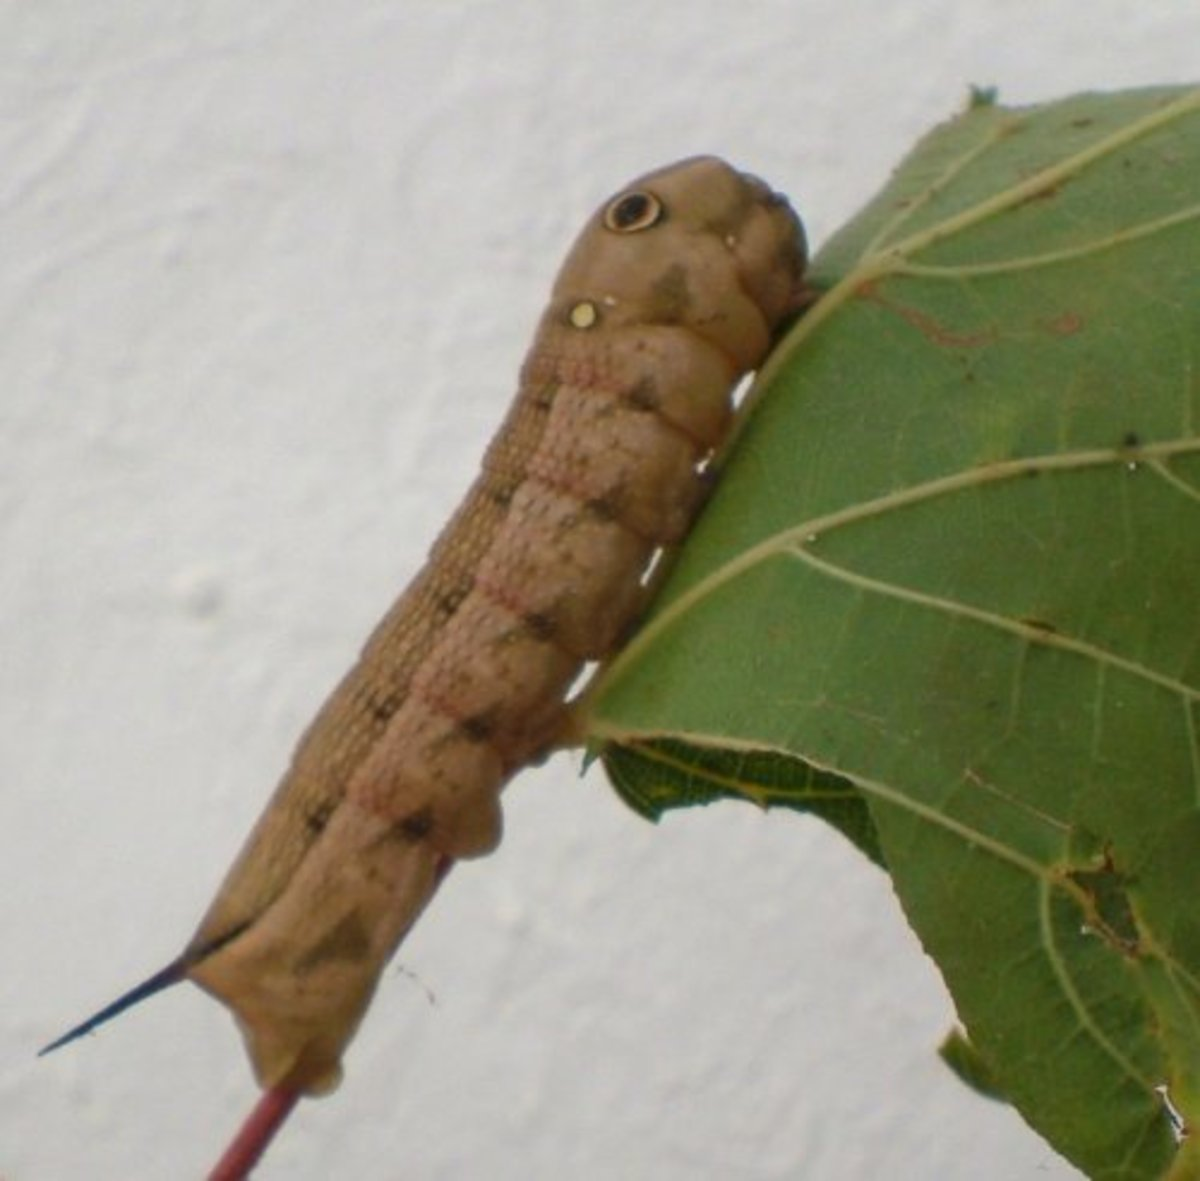 Vine Hawk caterpillar